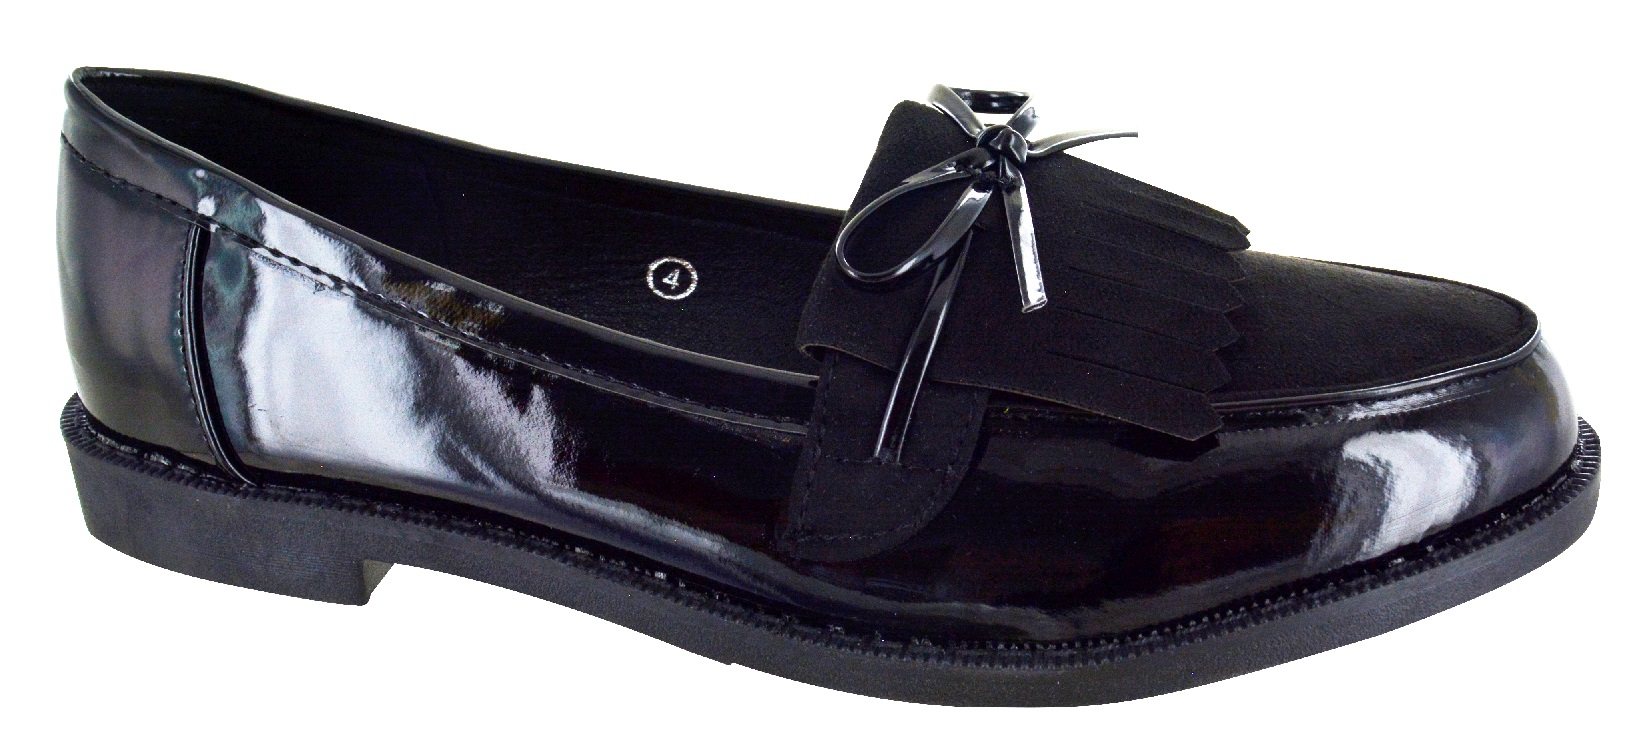 WOMENS-LADIES-FLAT-CREEPER-CHUNKY-SOLE-SCHOOL-WORK-DOLLY-LOAFERS-BOW-SHOES-SIZE thumbnail 13